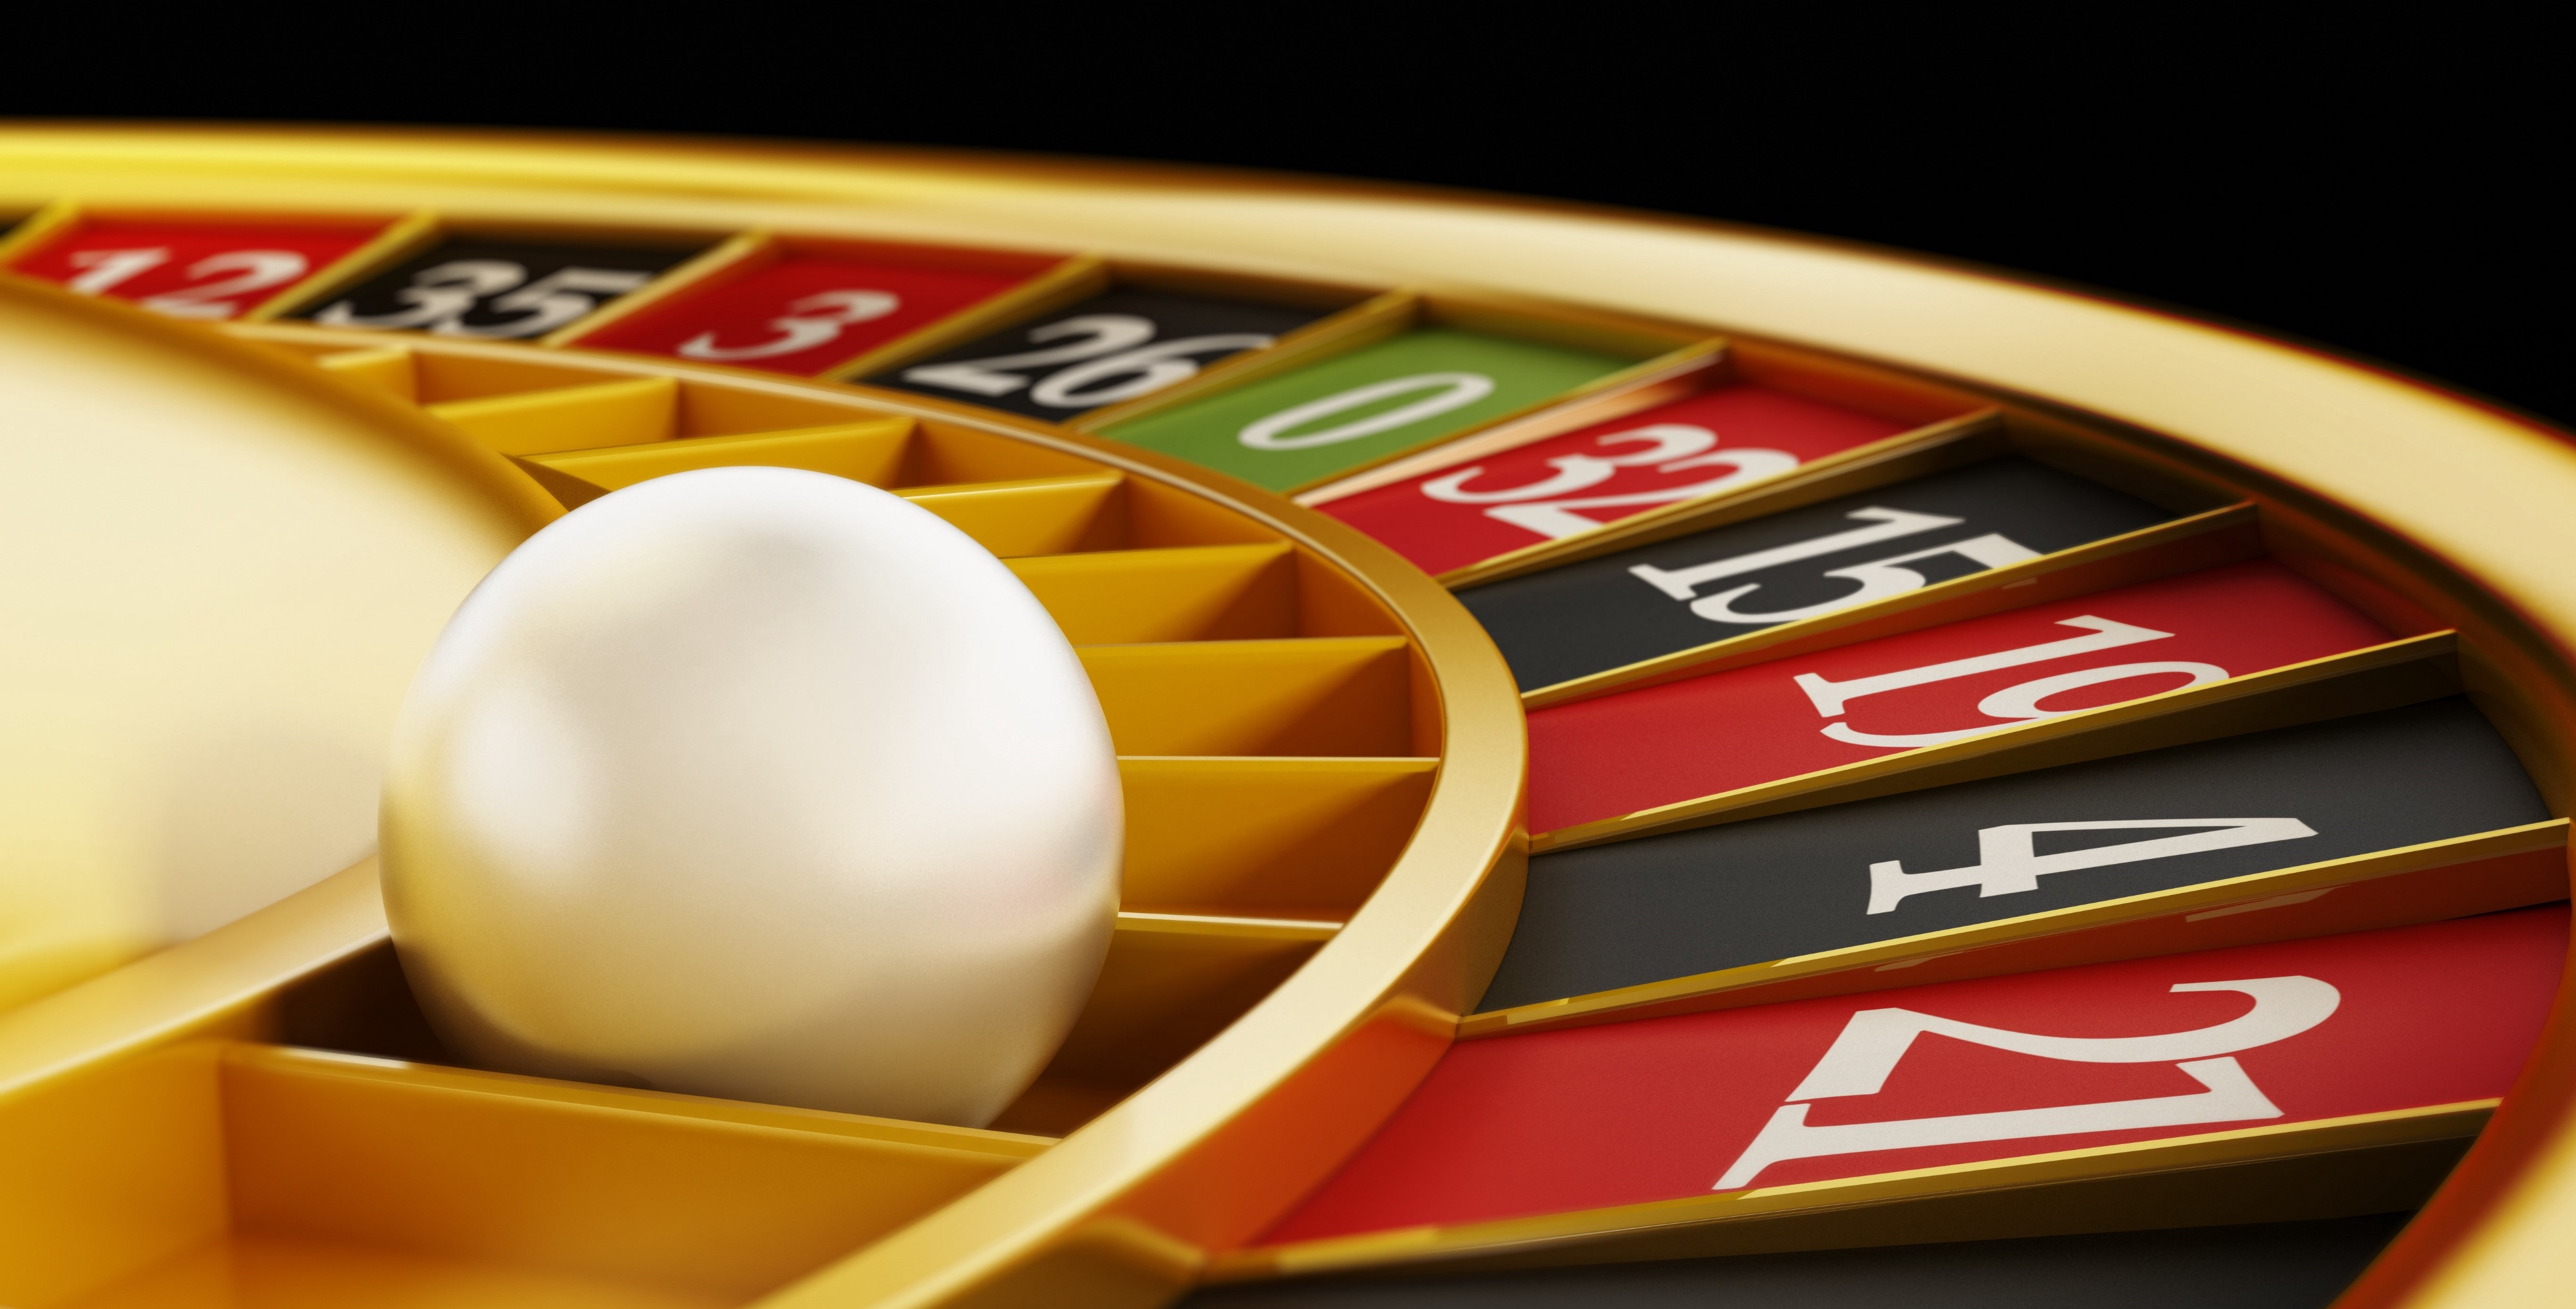 Simulating Roulette Strategies In R By Sukhdeep Sedha The Startup Medium